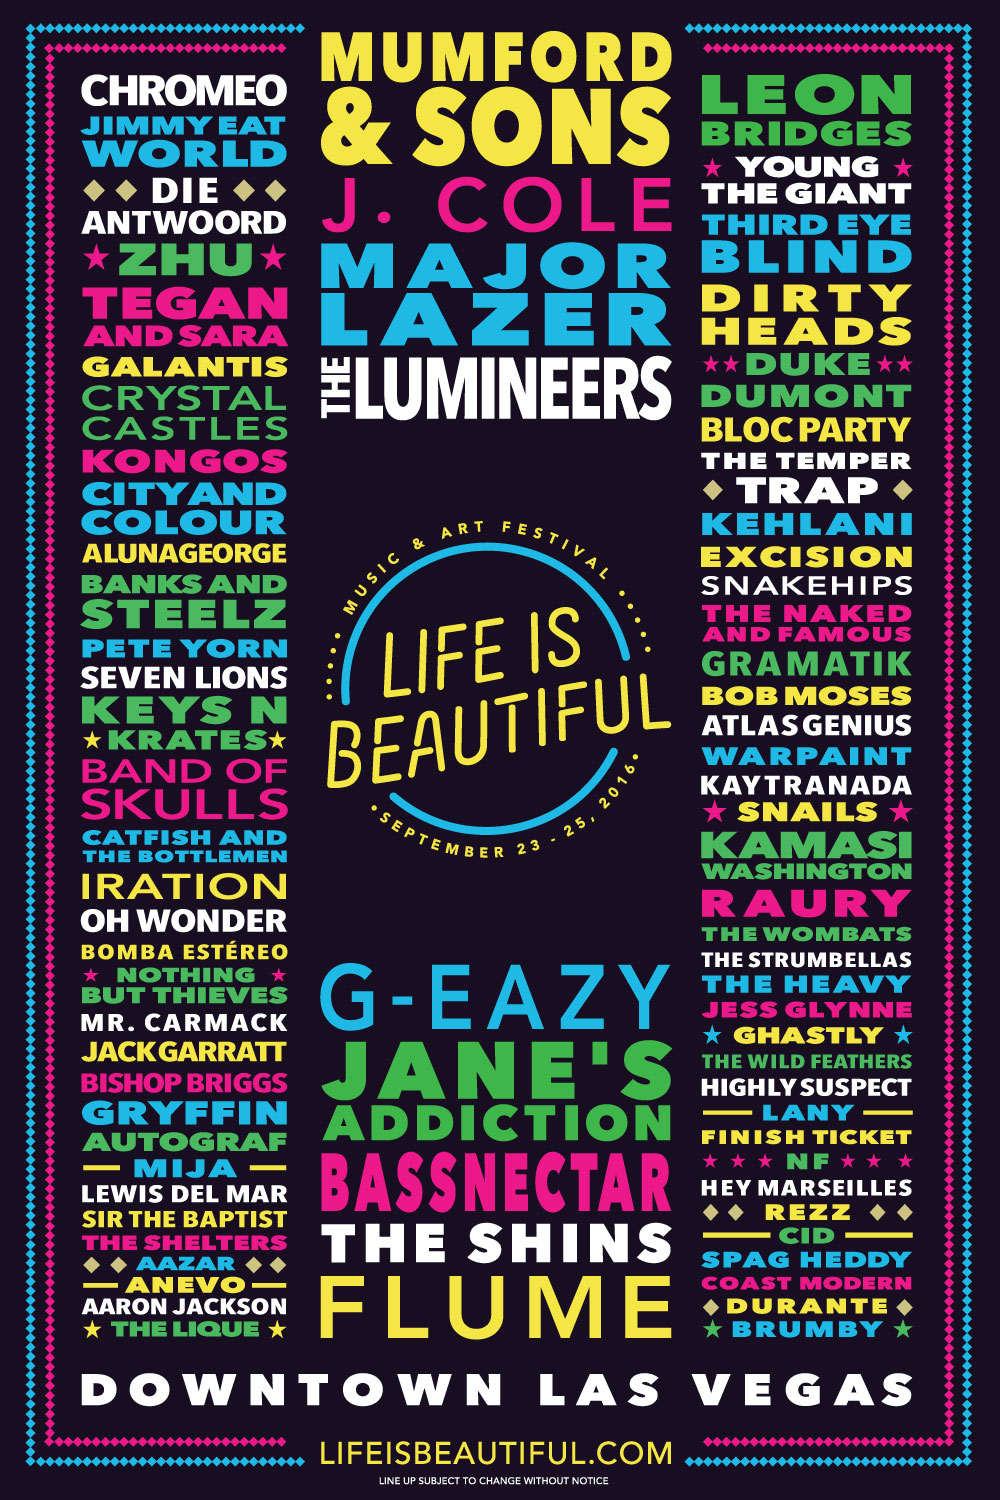 Bassnectar @ Life Is Beautiful 2016